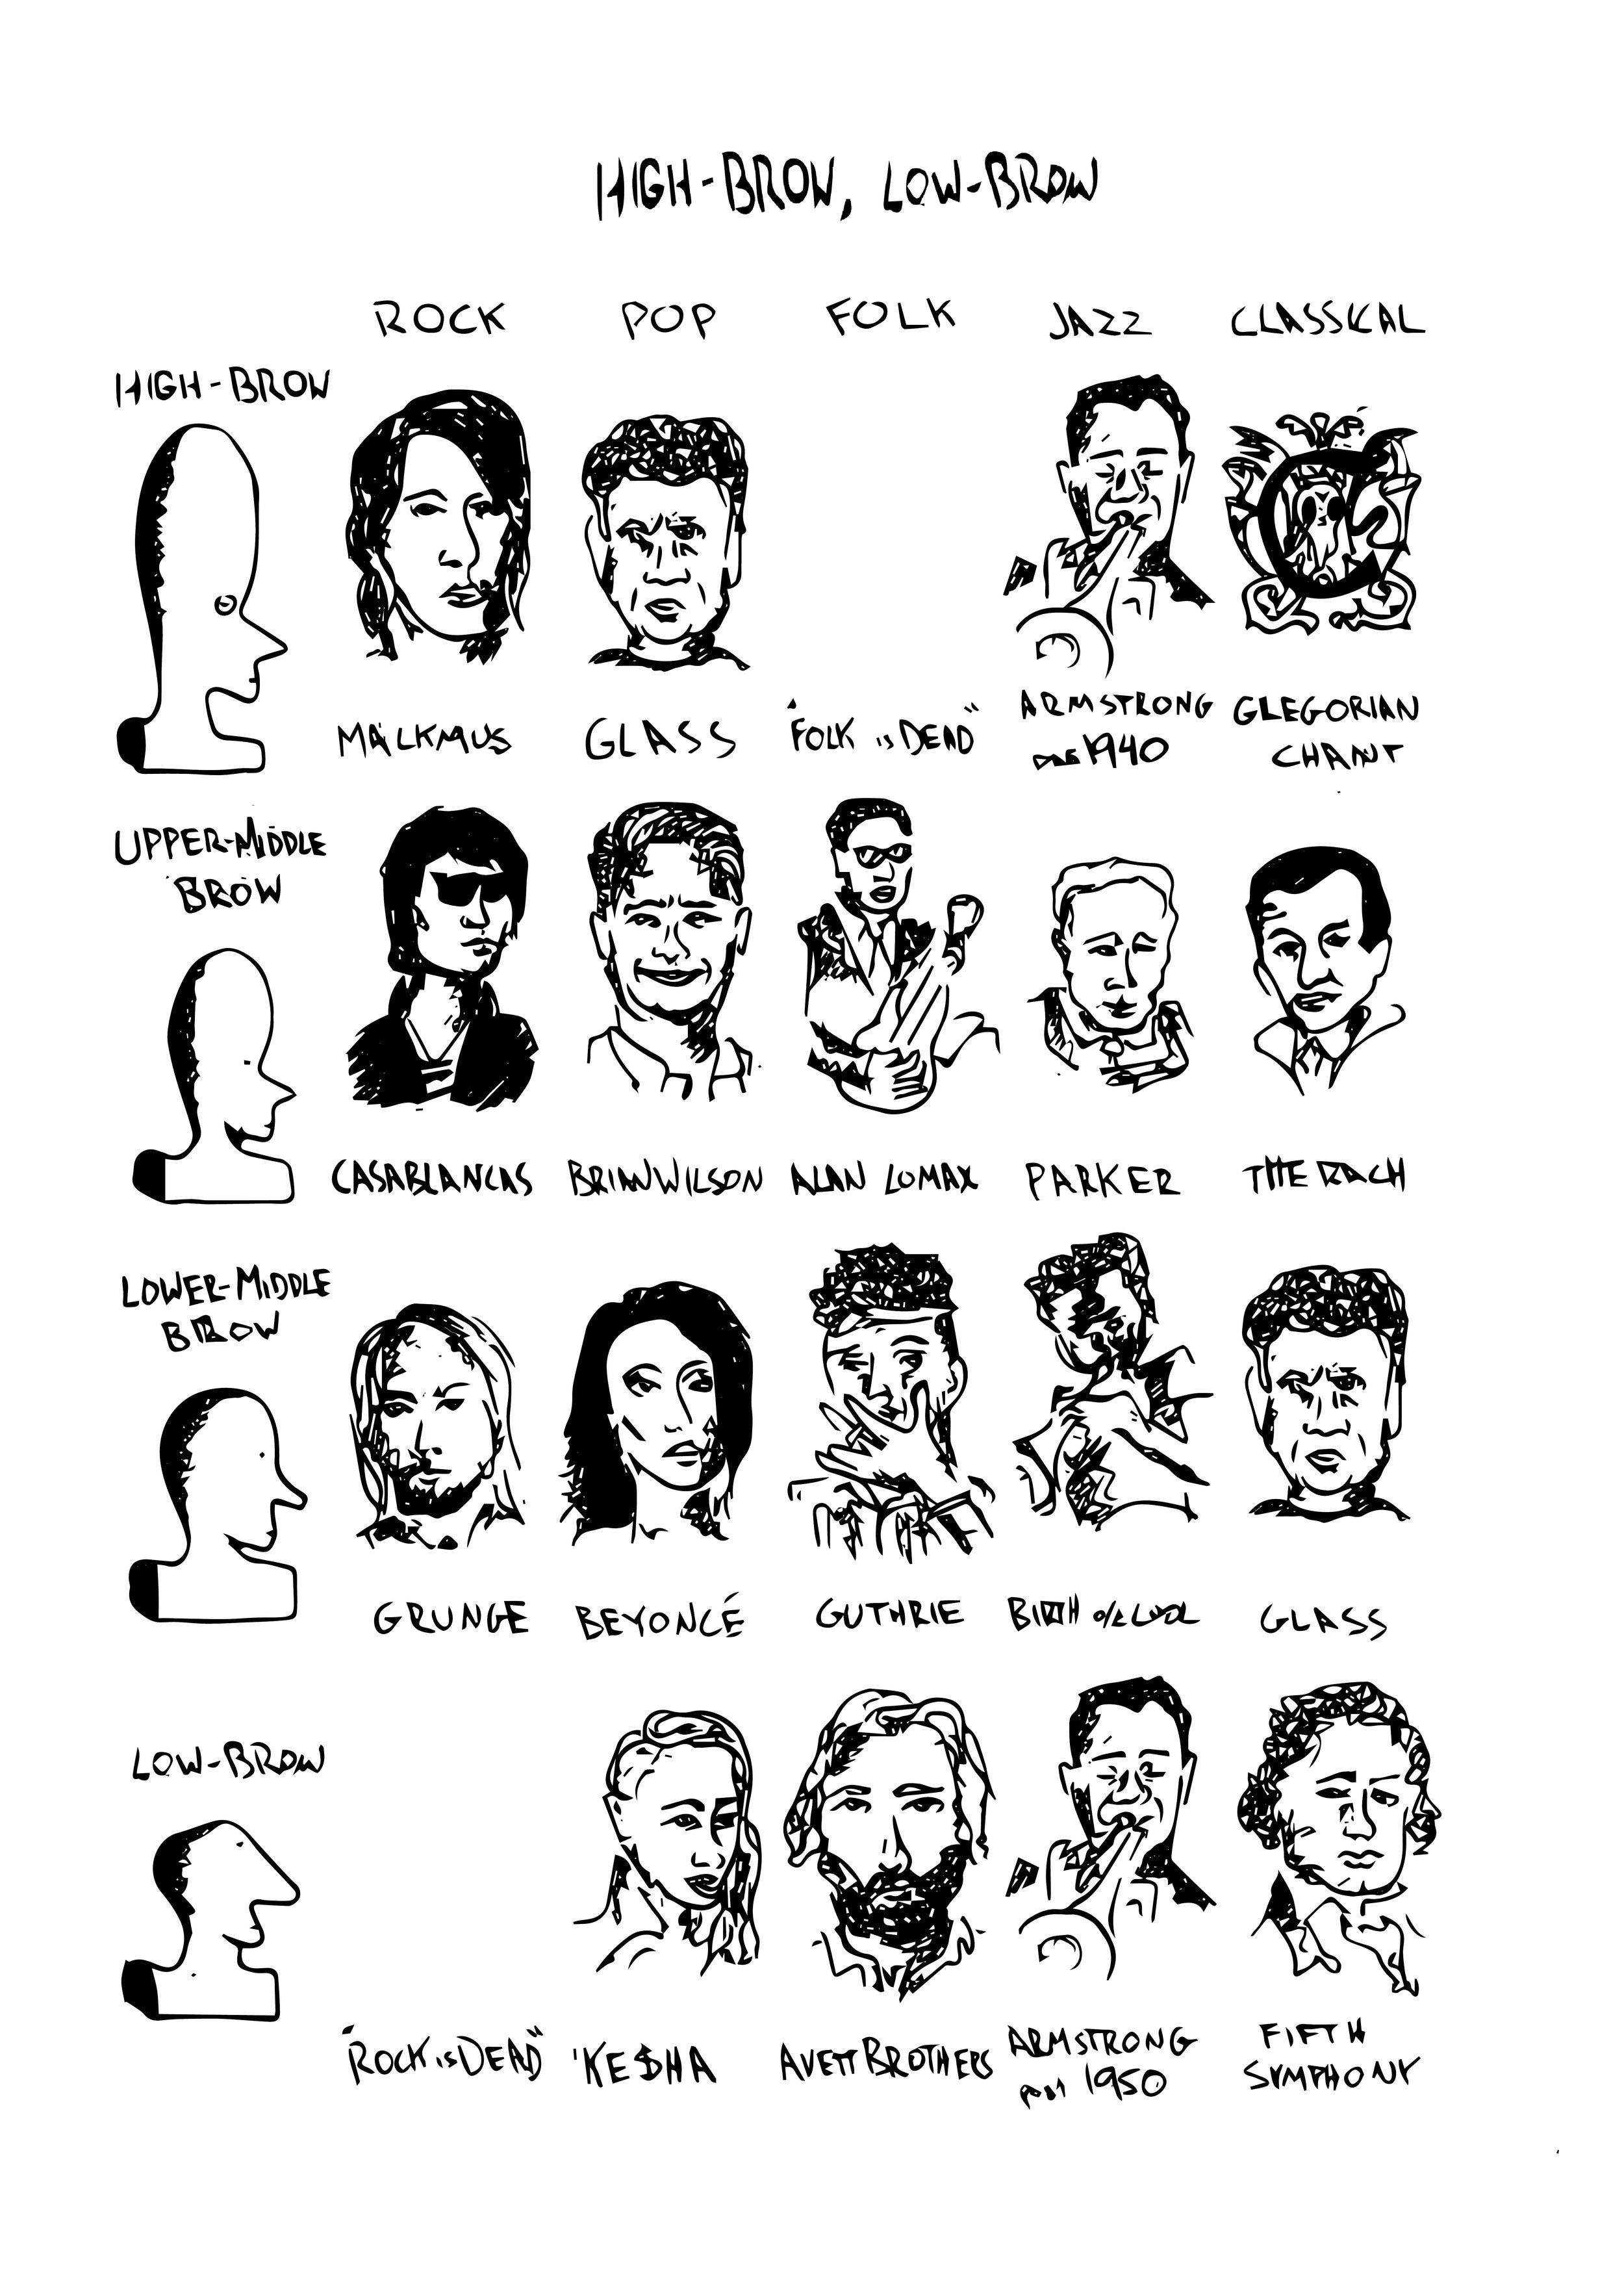 Image (mostly satirical) by Jeevan Farias and G. Johnson